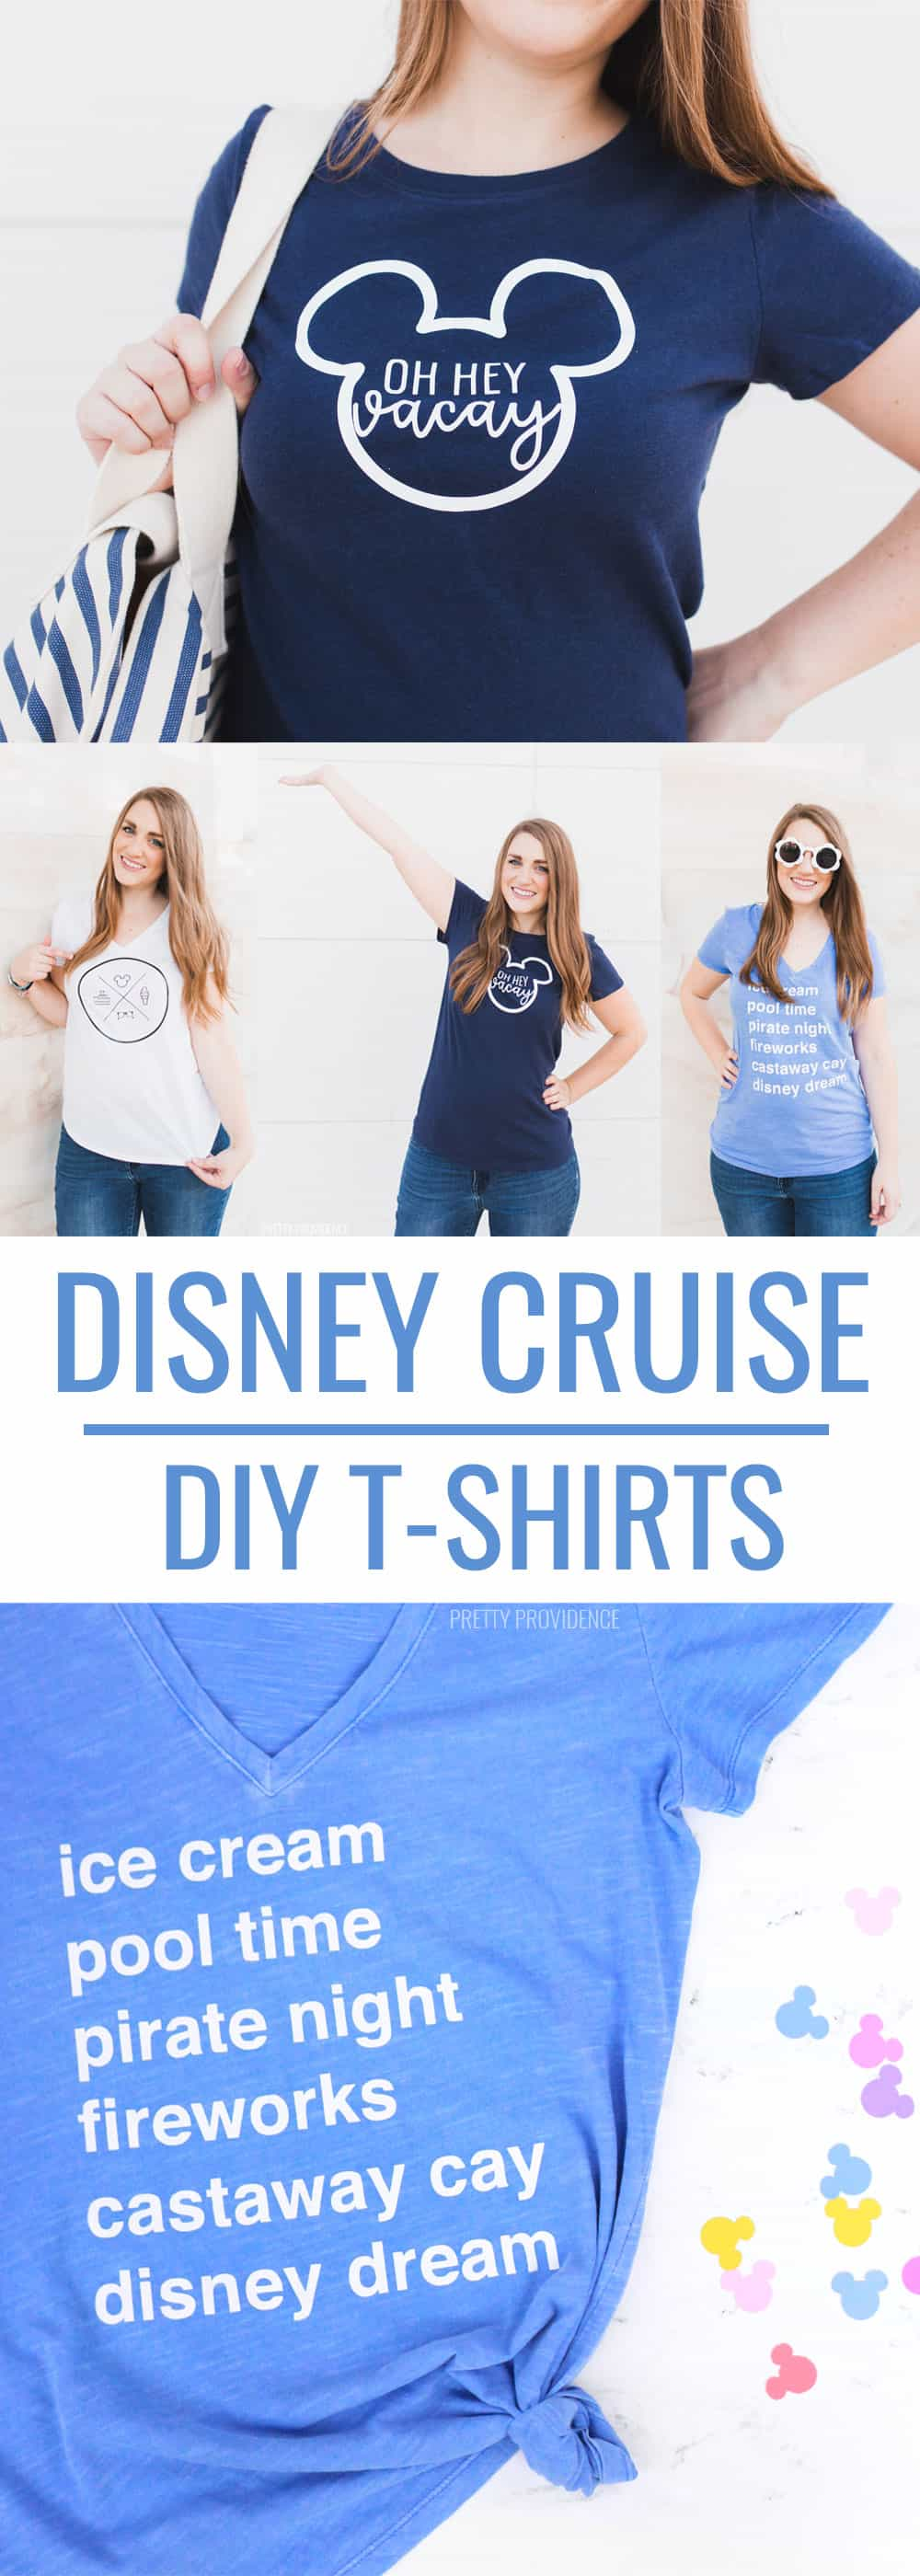 4a7b62b0ff DIY T-Shirts for a Disney Cruise - Pretty Providence